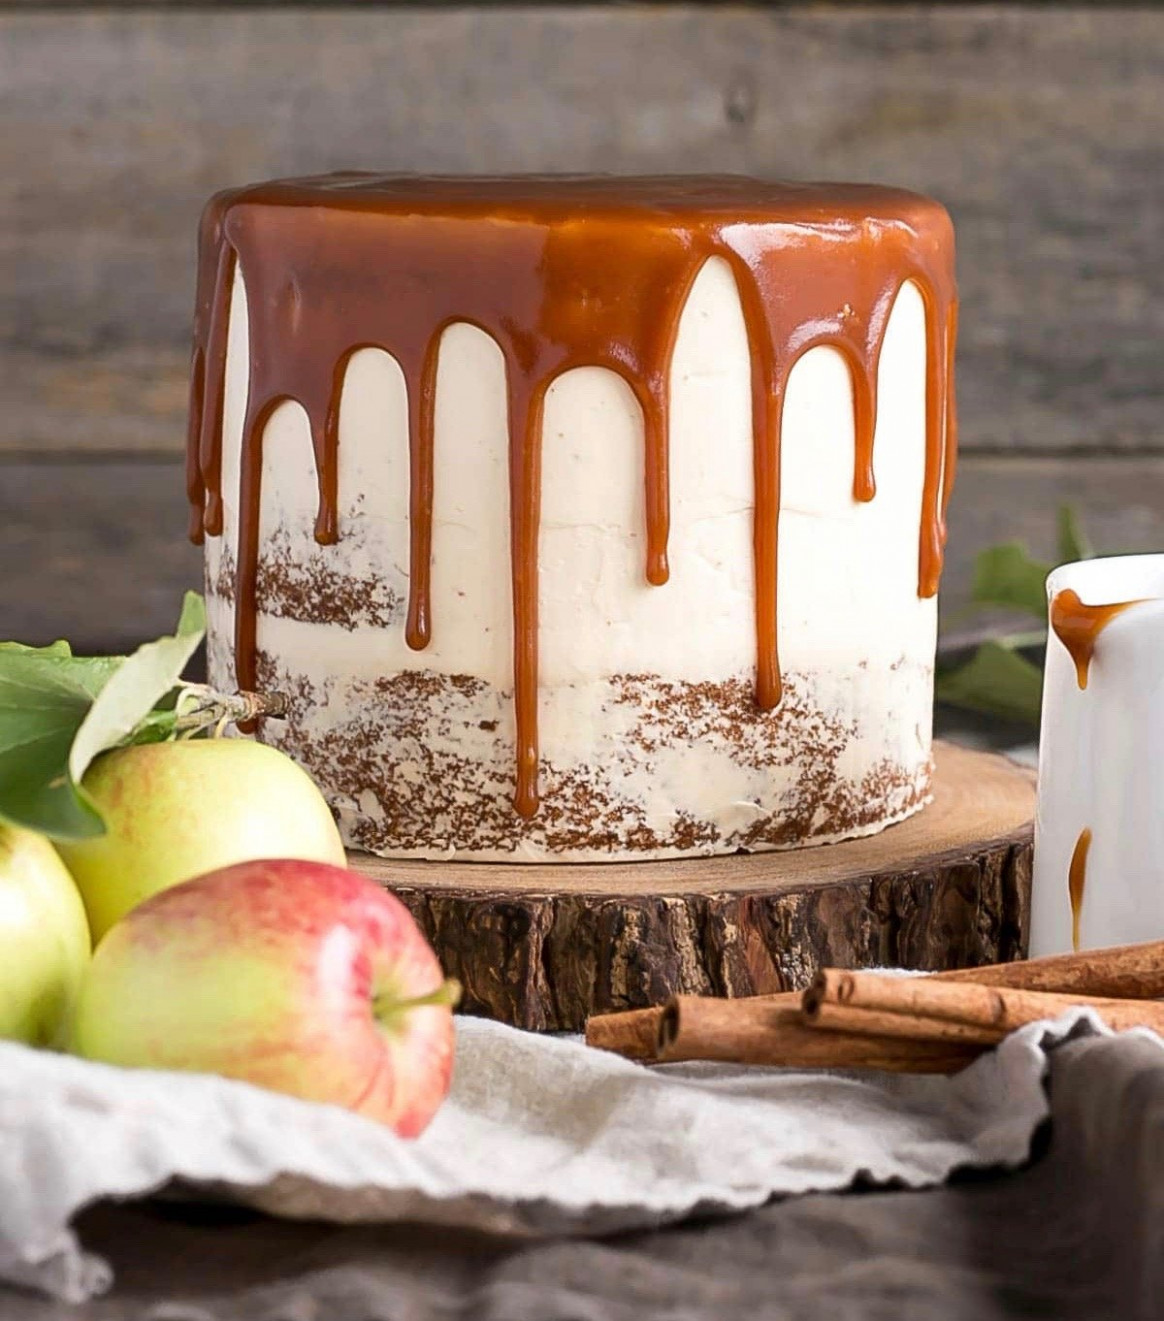 12 Apple Dessert Recipes for Fall - What to Bake With Apples - food recipes baking